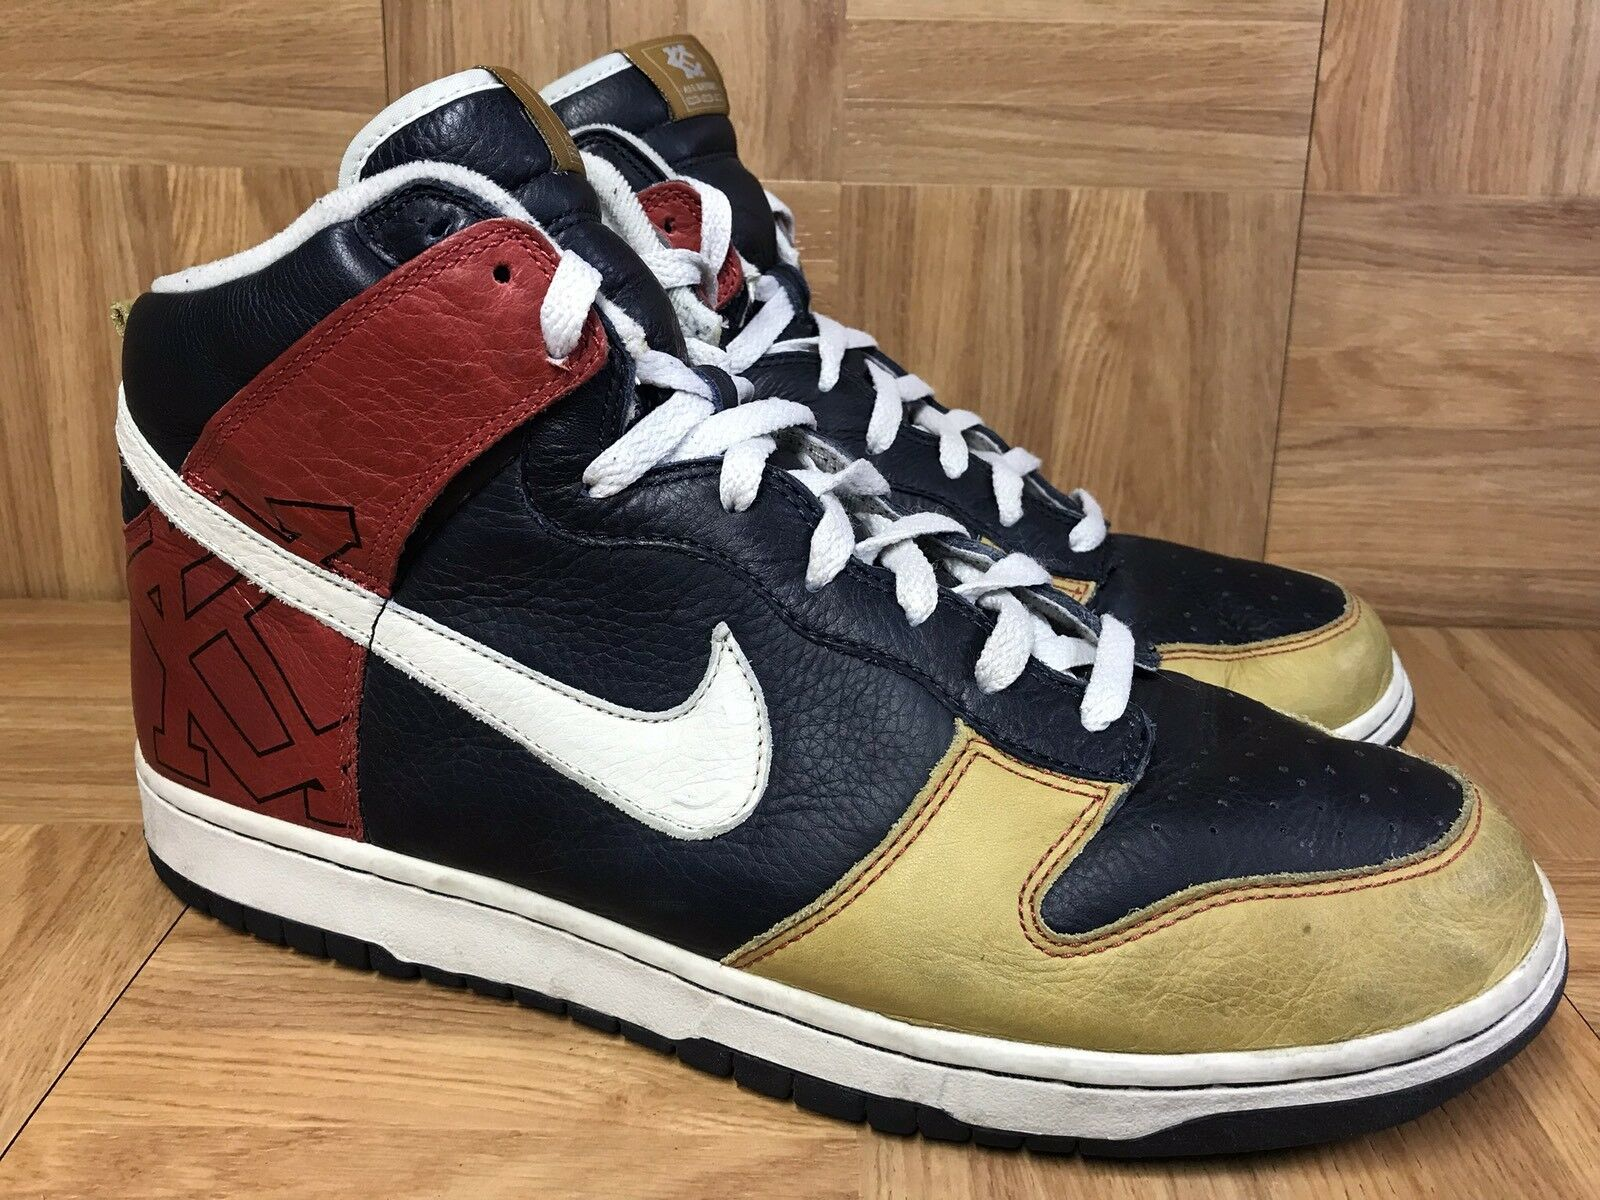 RARE Nike Dunk High Premium UTT Untold Truth Navy bluee Red Sz 12 313462-401 LE